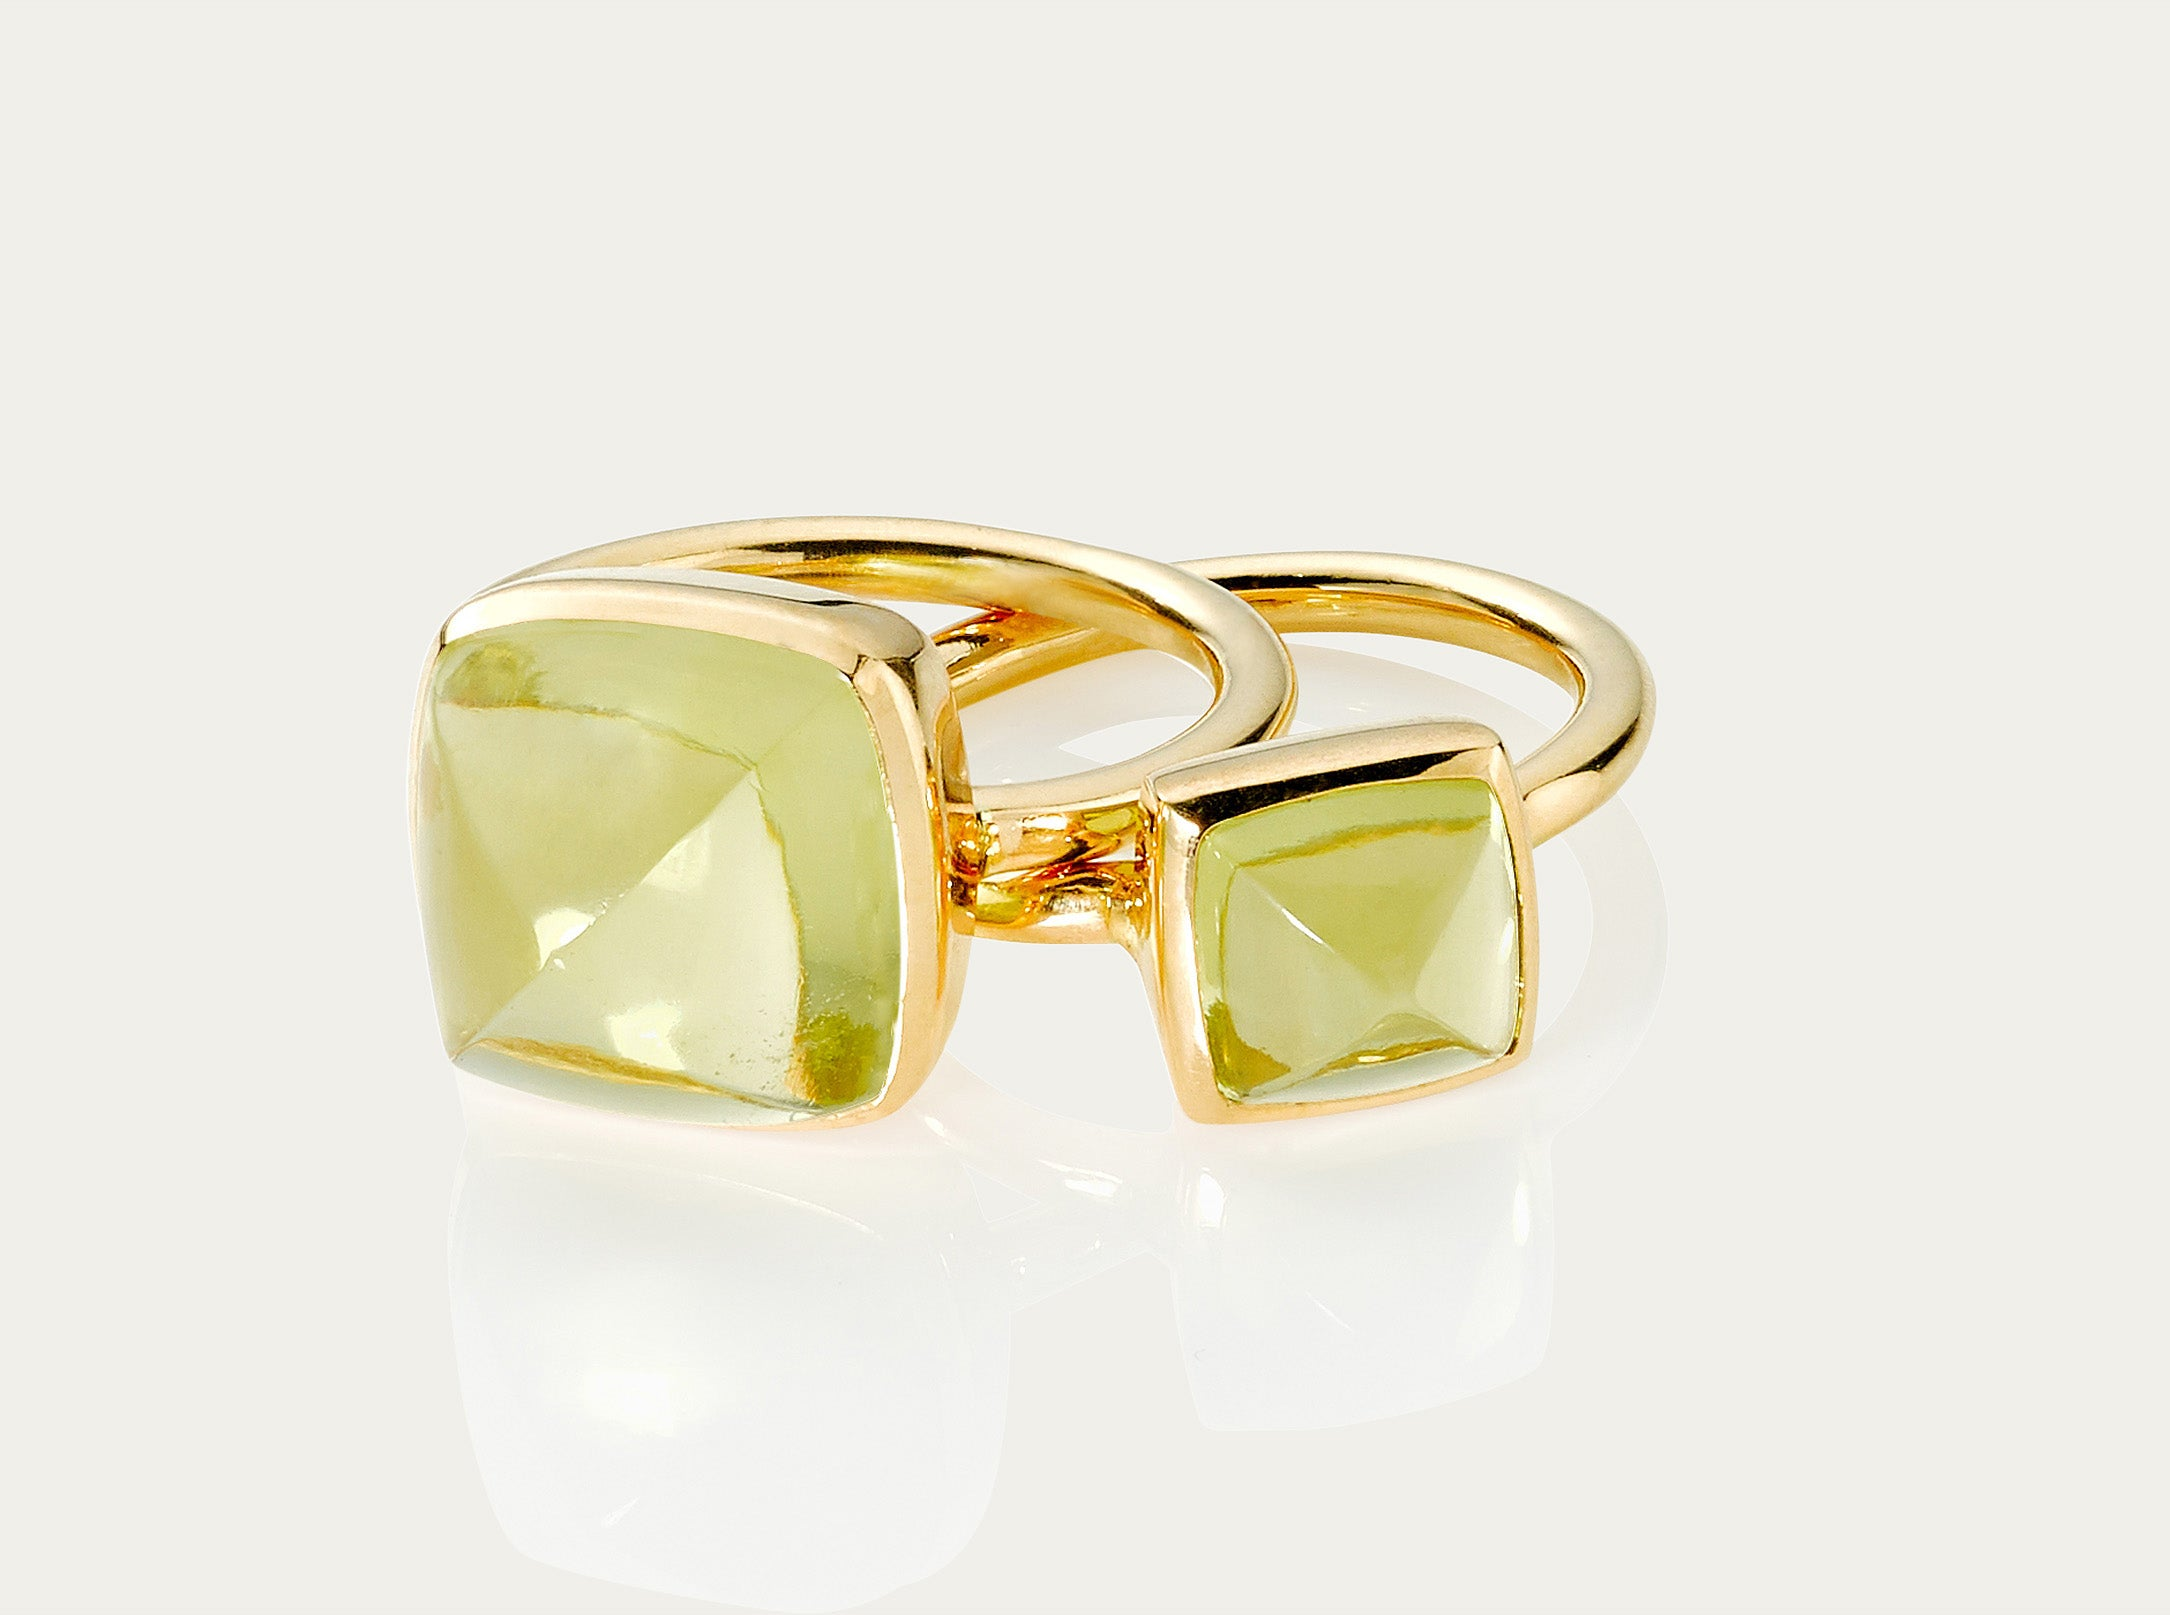 SUGARLOAF Cut Ring - LEMON TOPAZ, 18K Gold